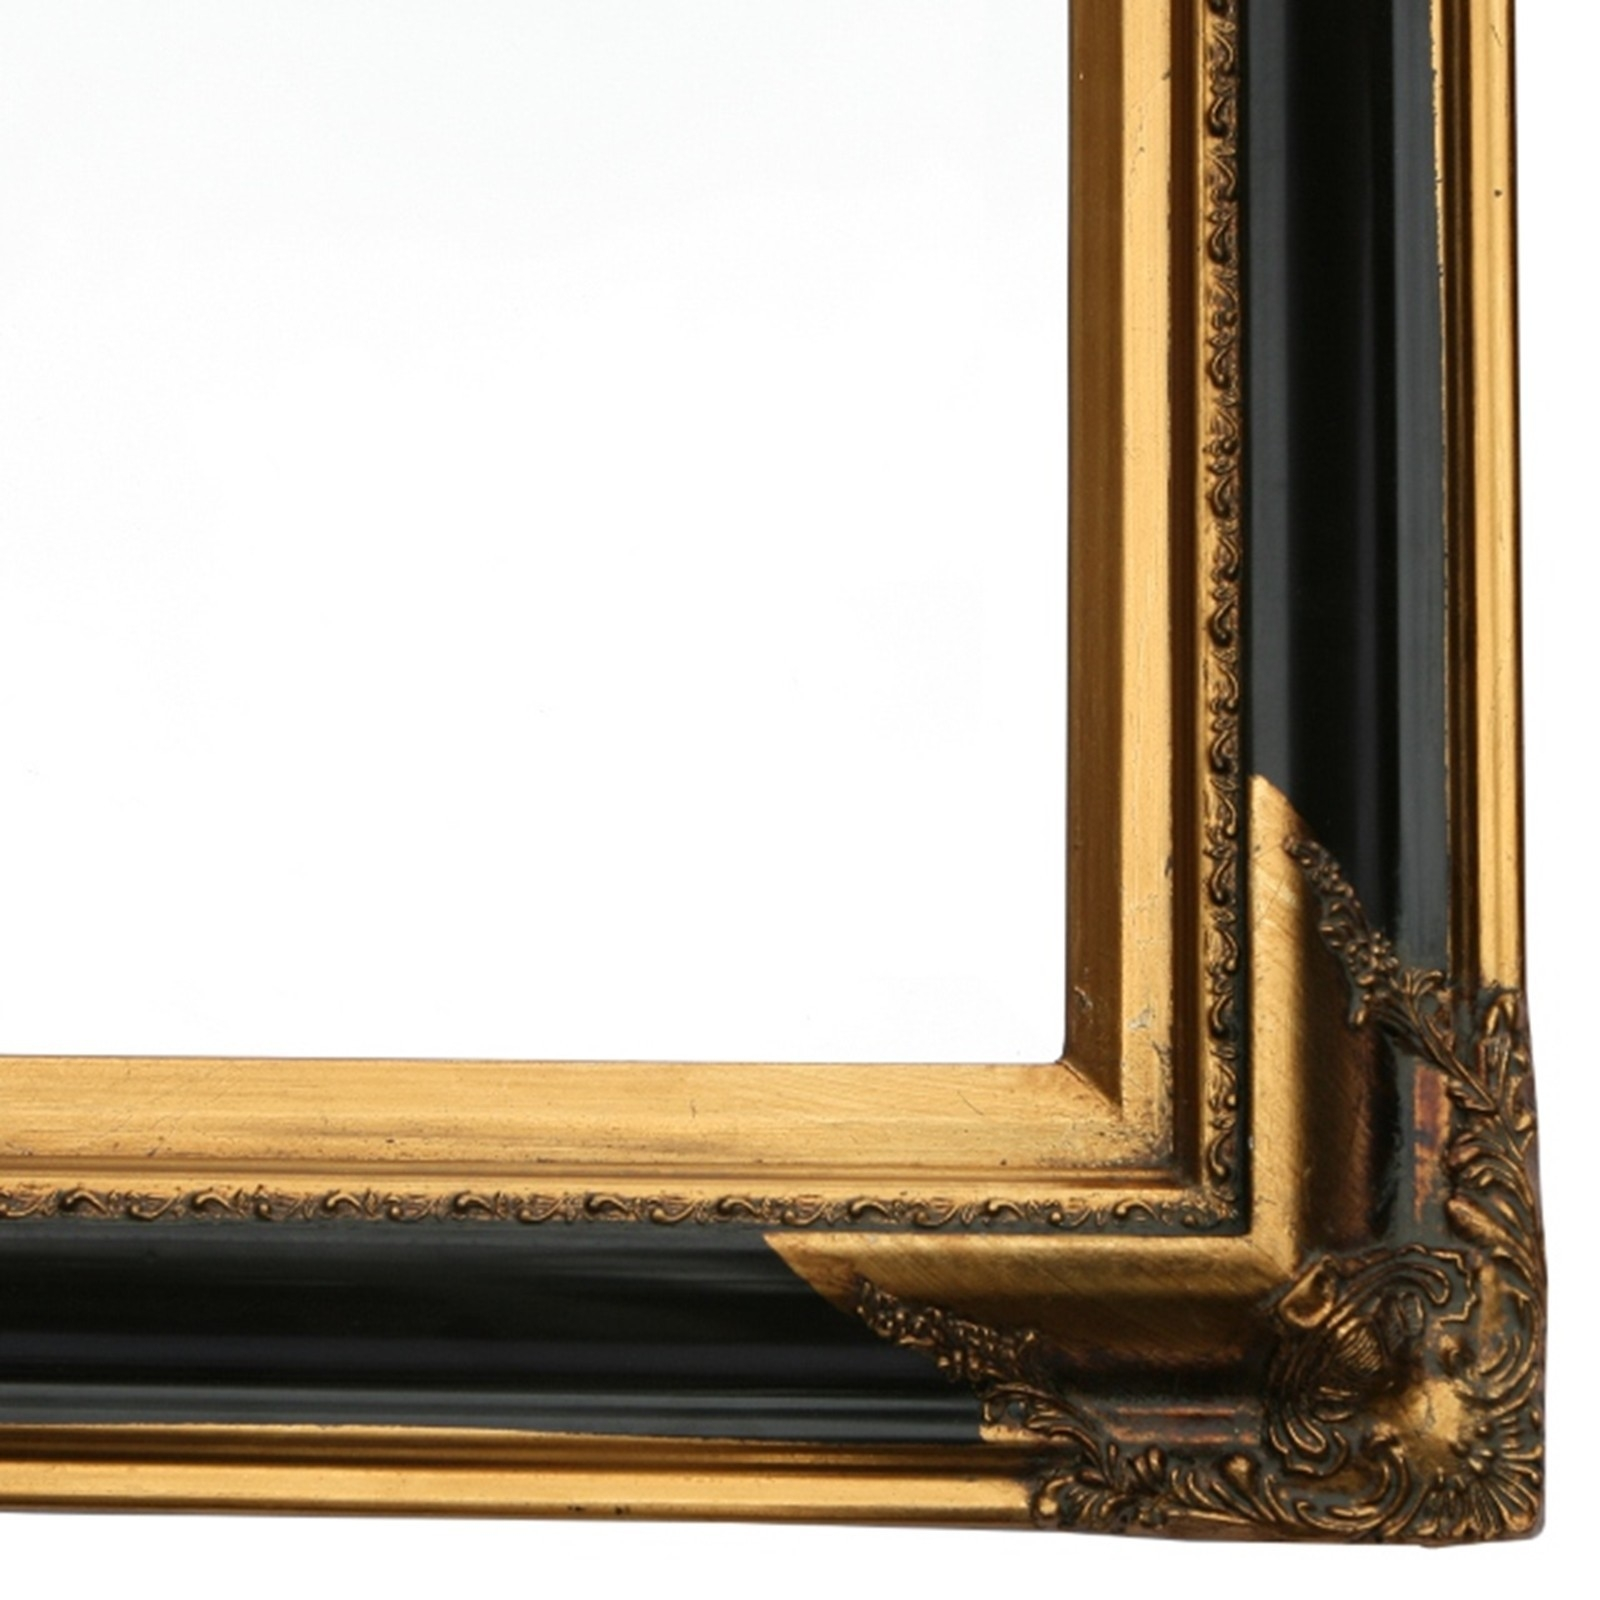 Antique Baroque Wall Mirror With Decor For You And Buy On Online For Mirror Online Shop (Image 3 of 15)